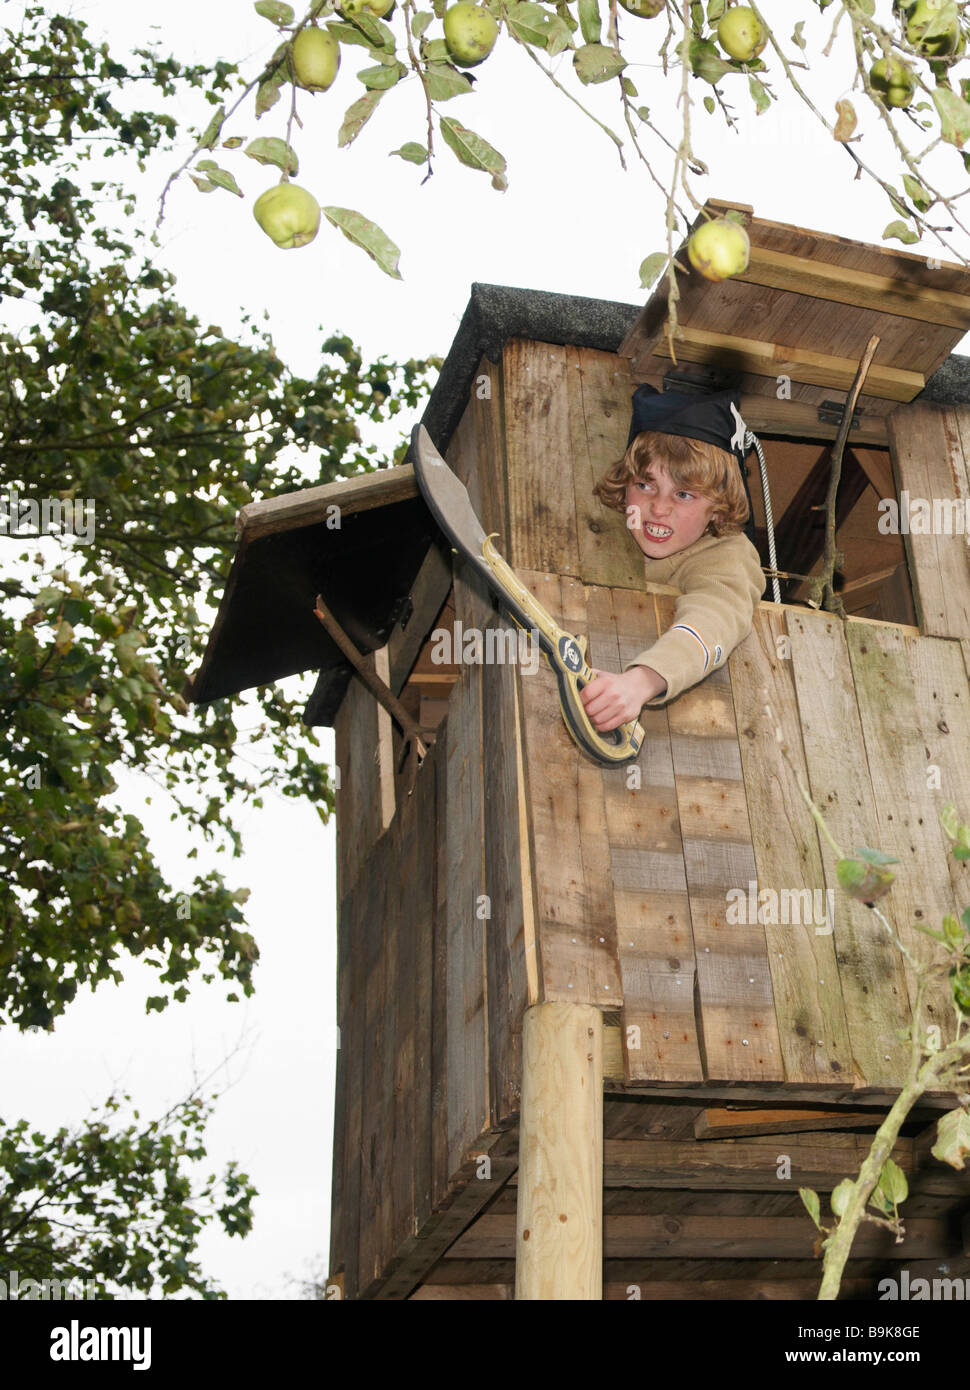 Boy playing in treehouse - Stock Image